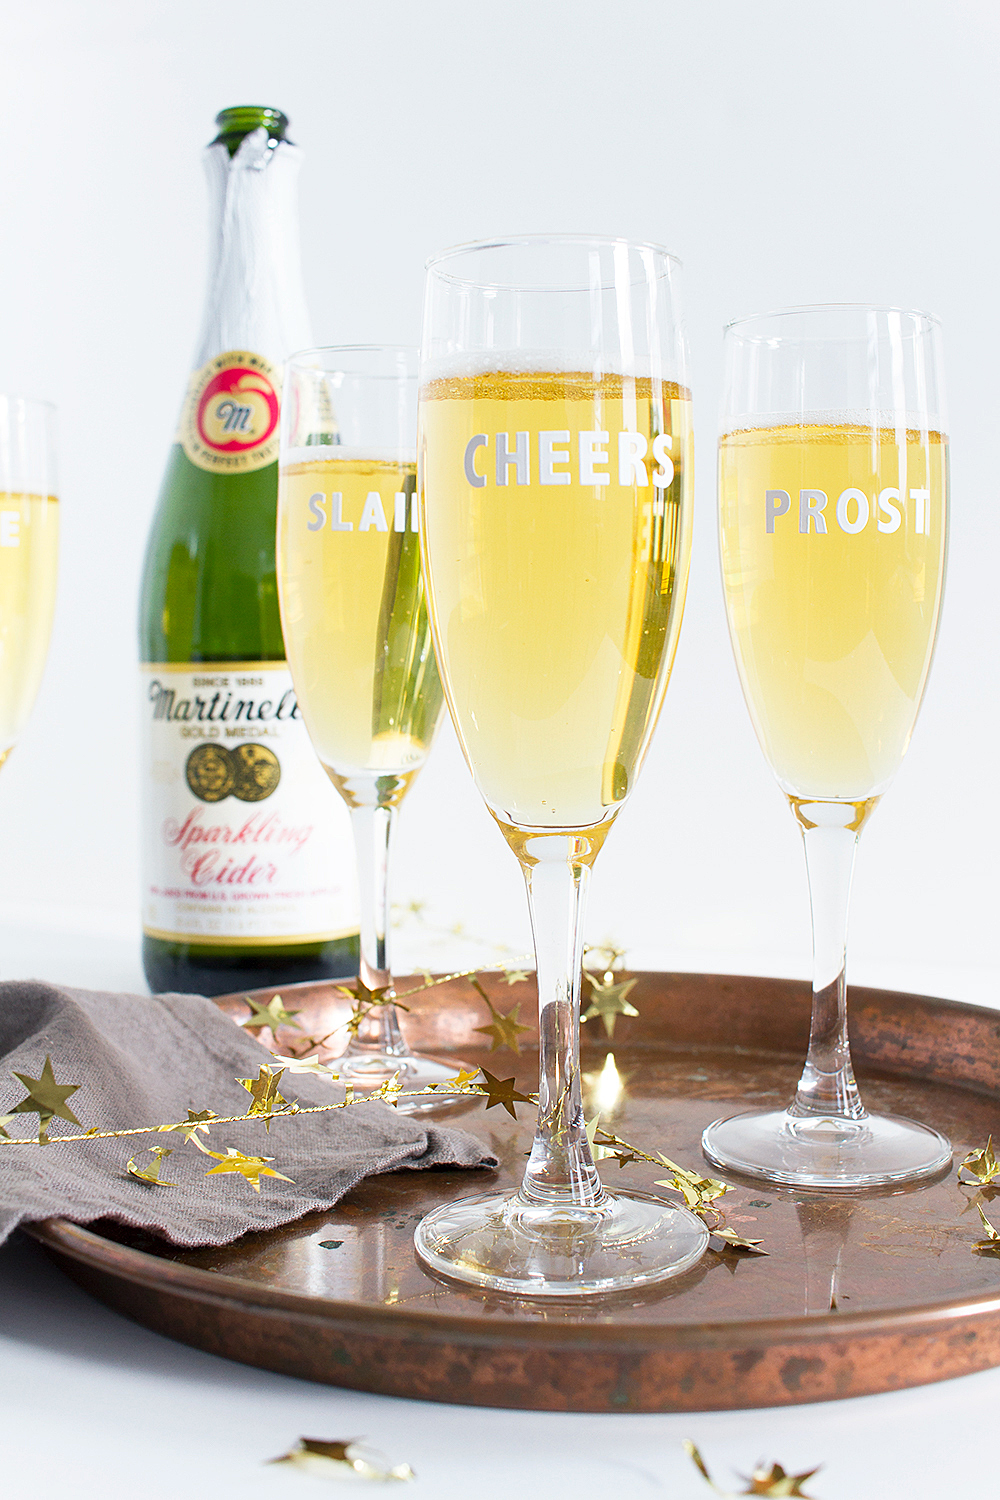 Get festive with this 5 minute New Year's Eve party hack! These DIY Cheers Champagne Flutes are super quick, and all you need are stickers!